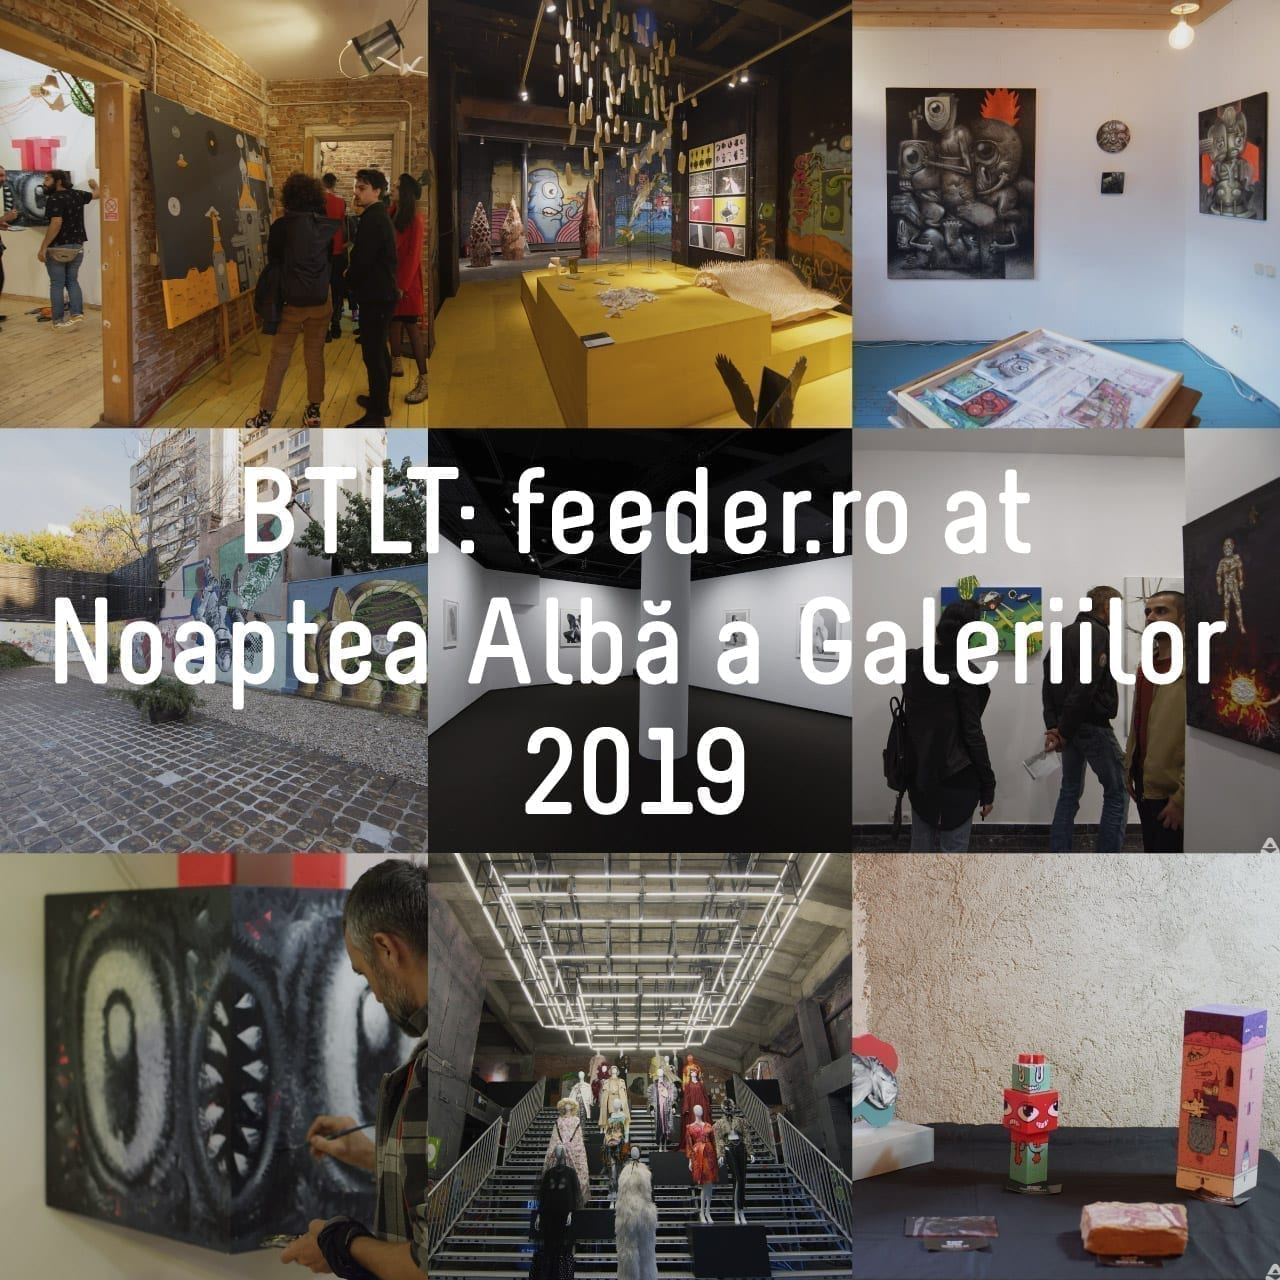 BTLT (Been There Liked That): feeder.ro at Noaptea Albă a Galeriilor 2019